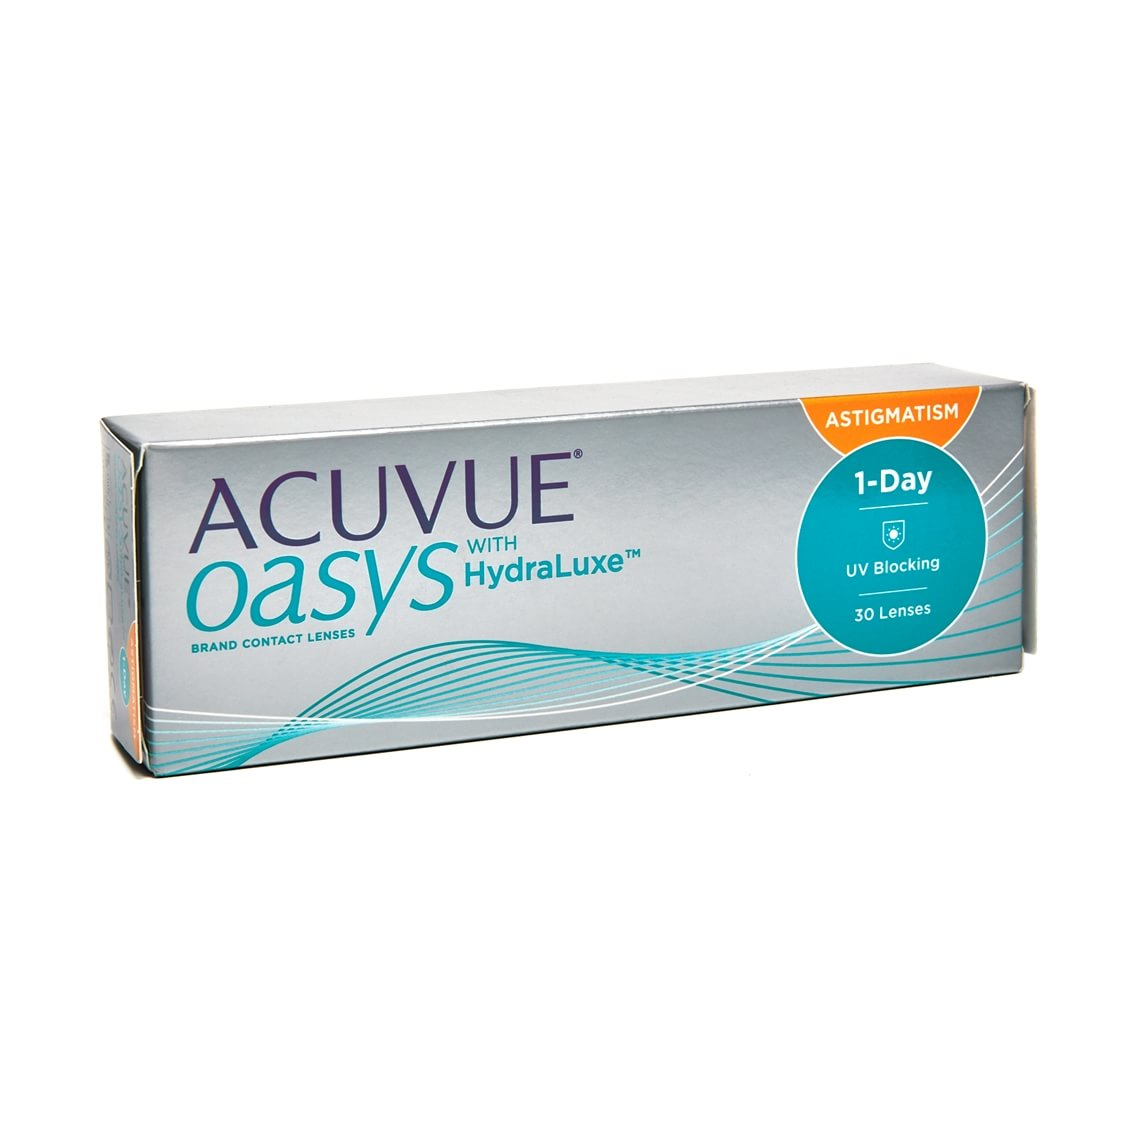 Acuvue Oasys 1-Day with HydraLuxe for Astigmatism 30 stk/pakke